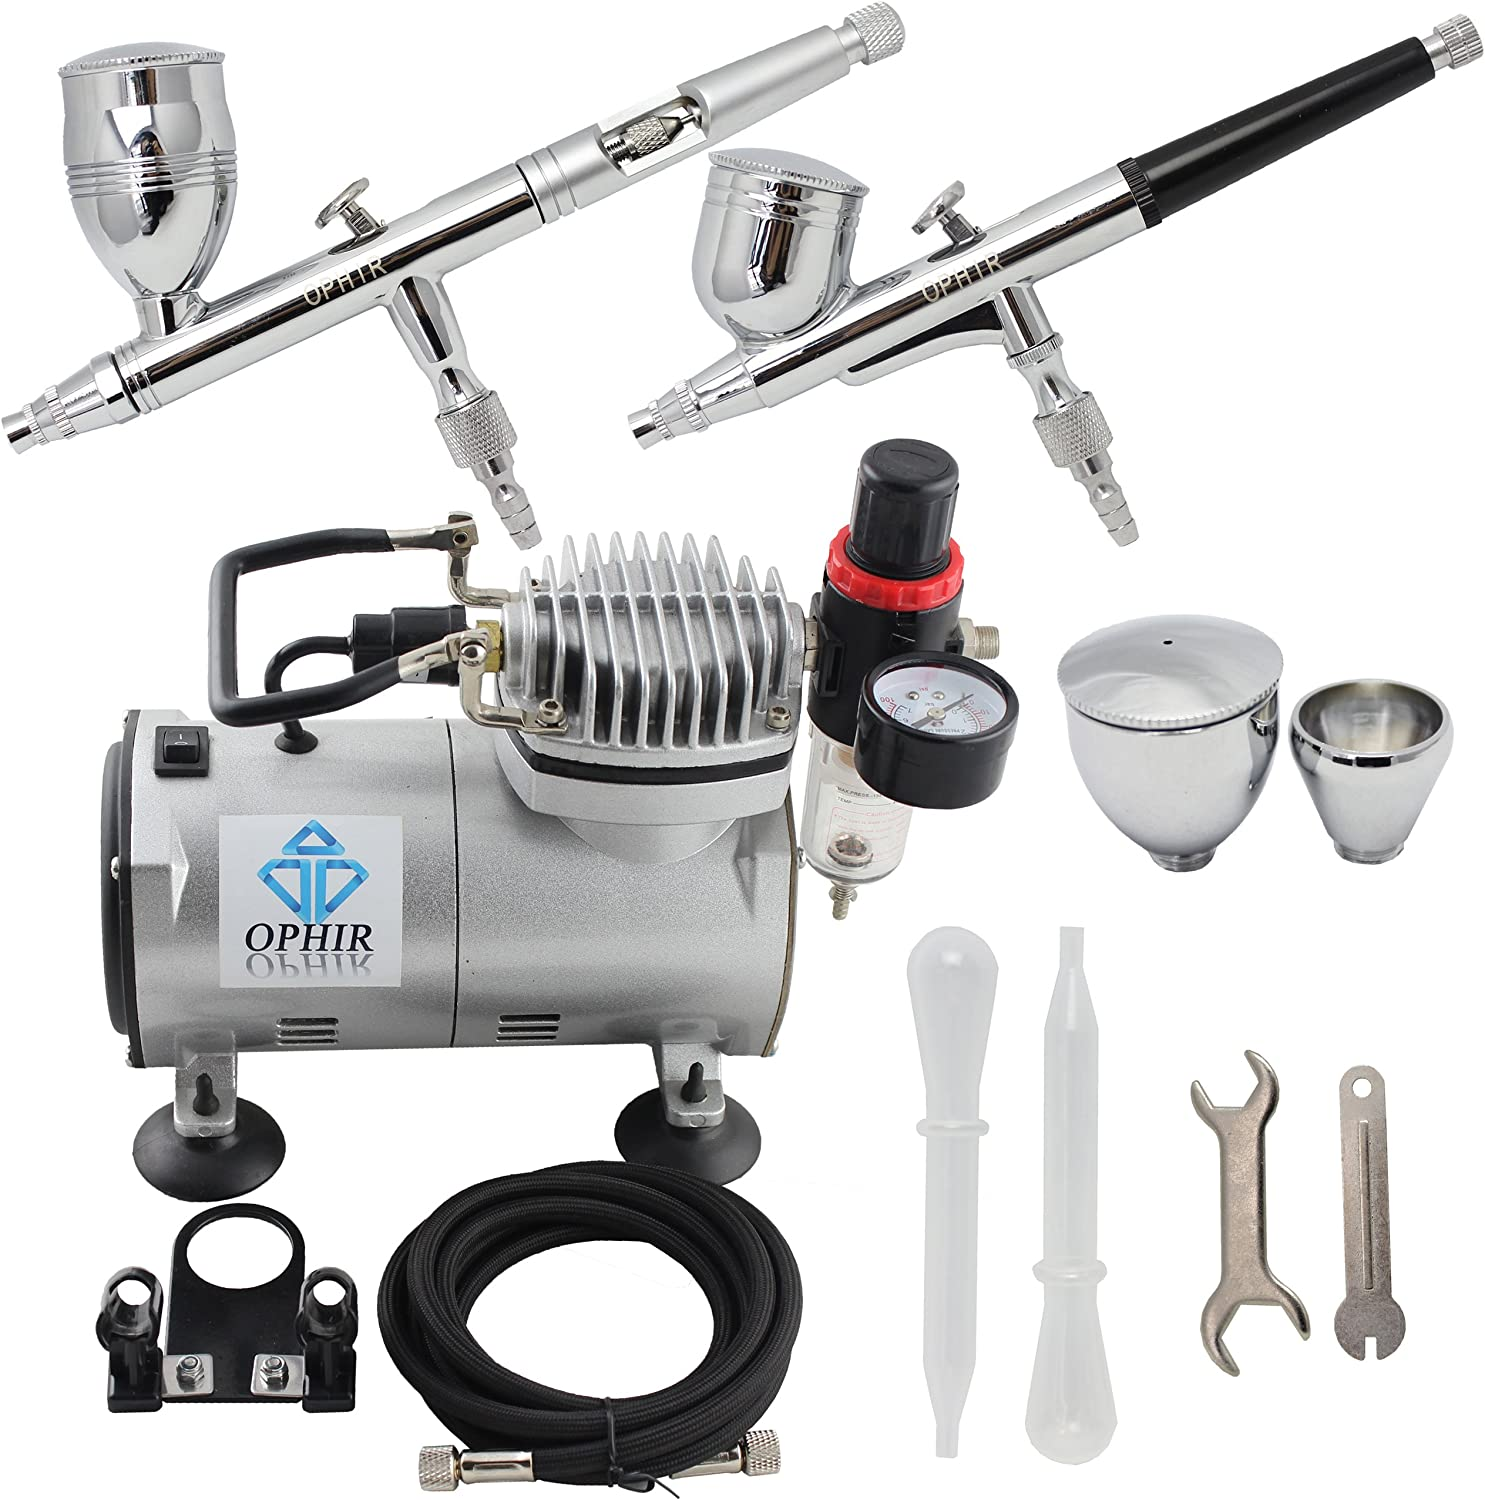 220V//50Hz 0.3mm Double-Action Airbrush Kit Spray Filter Autostop Air Compressor